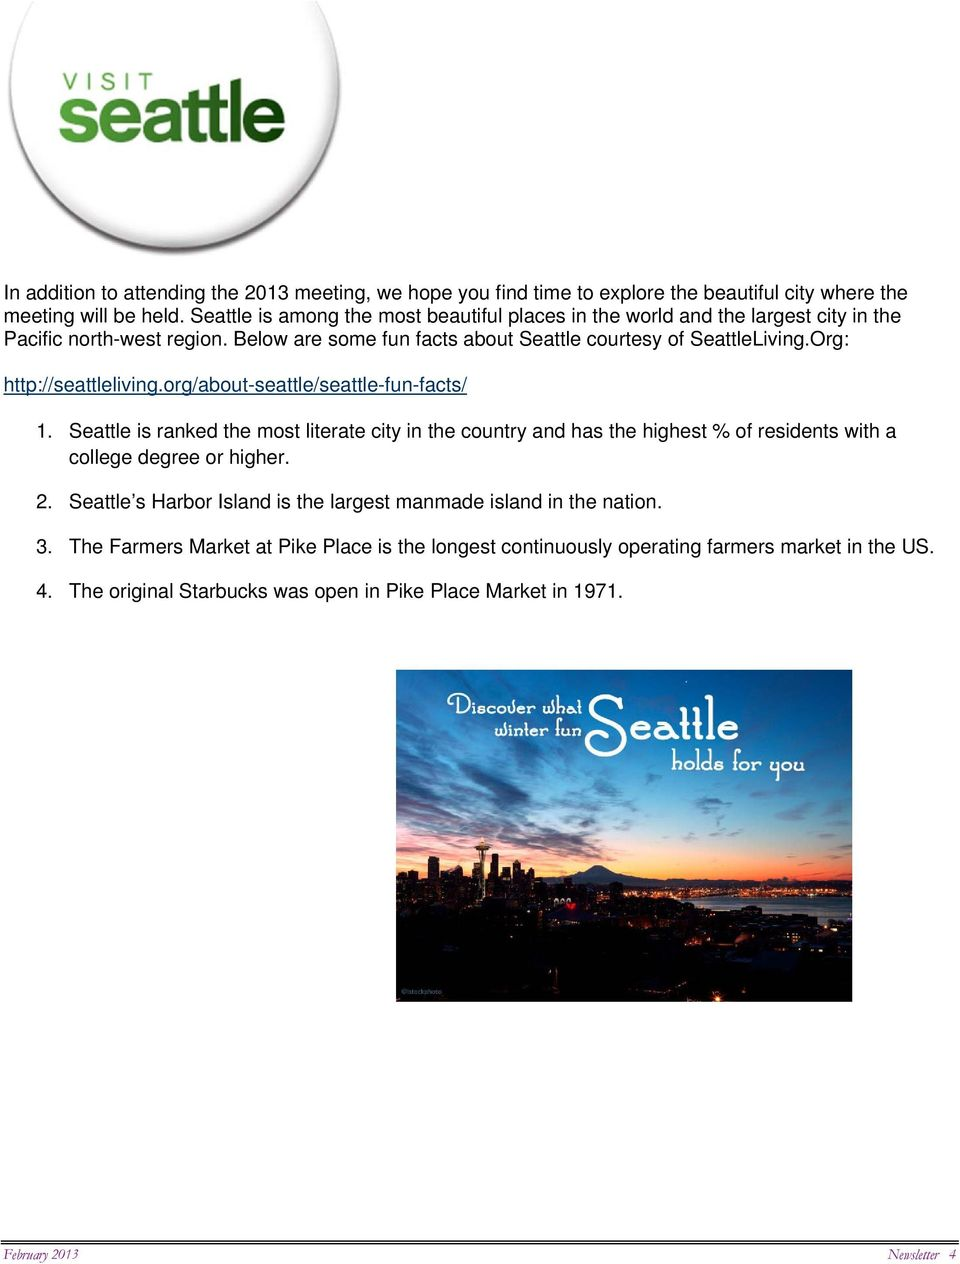 Org: http://seattleliving.org/about-seattle/seattle-fun-facts/ 1. Seattle is ranked the most literate city in the country and has the highest % of residents with a college degree or higher.